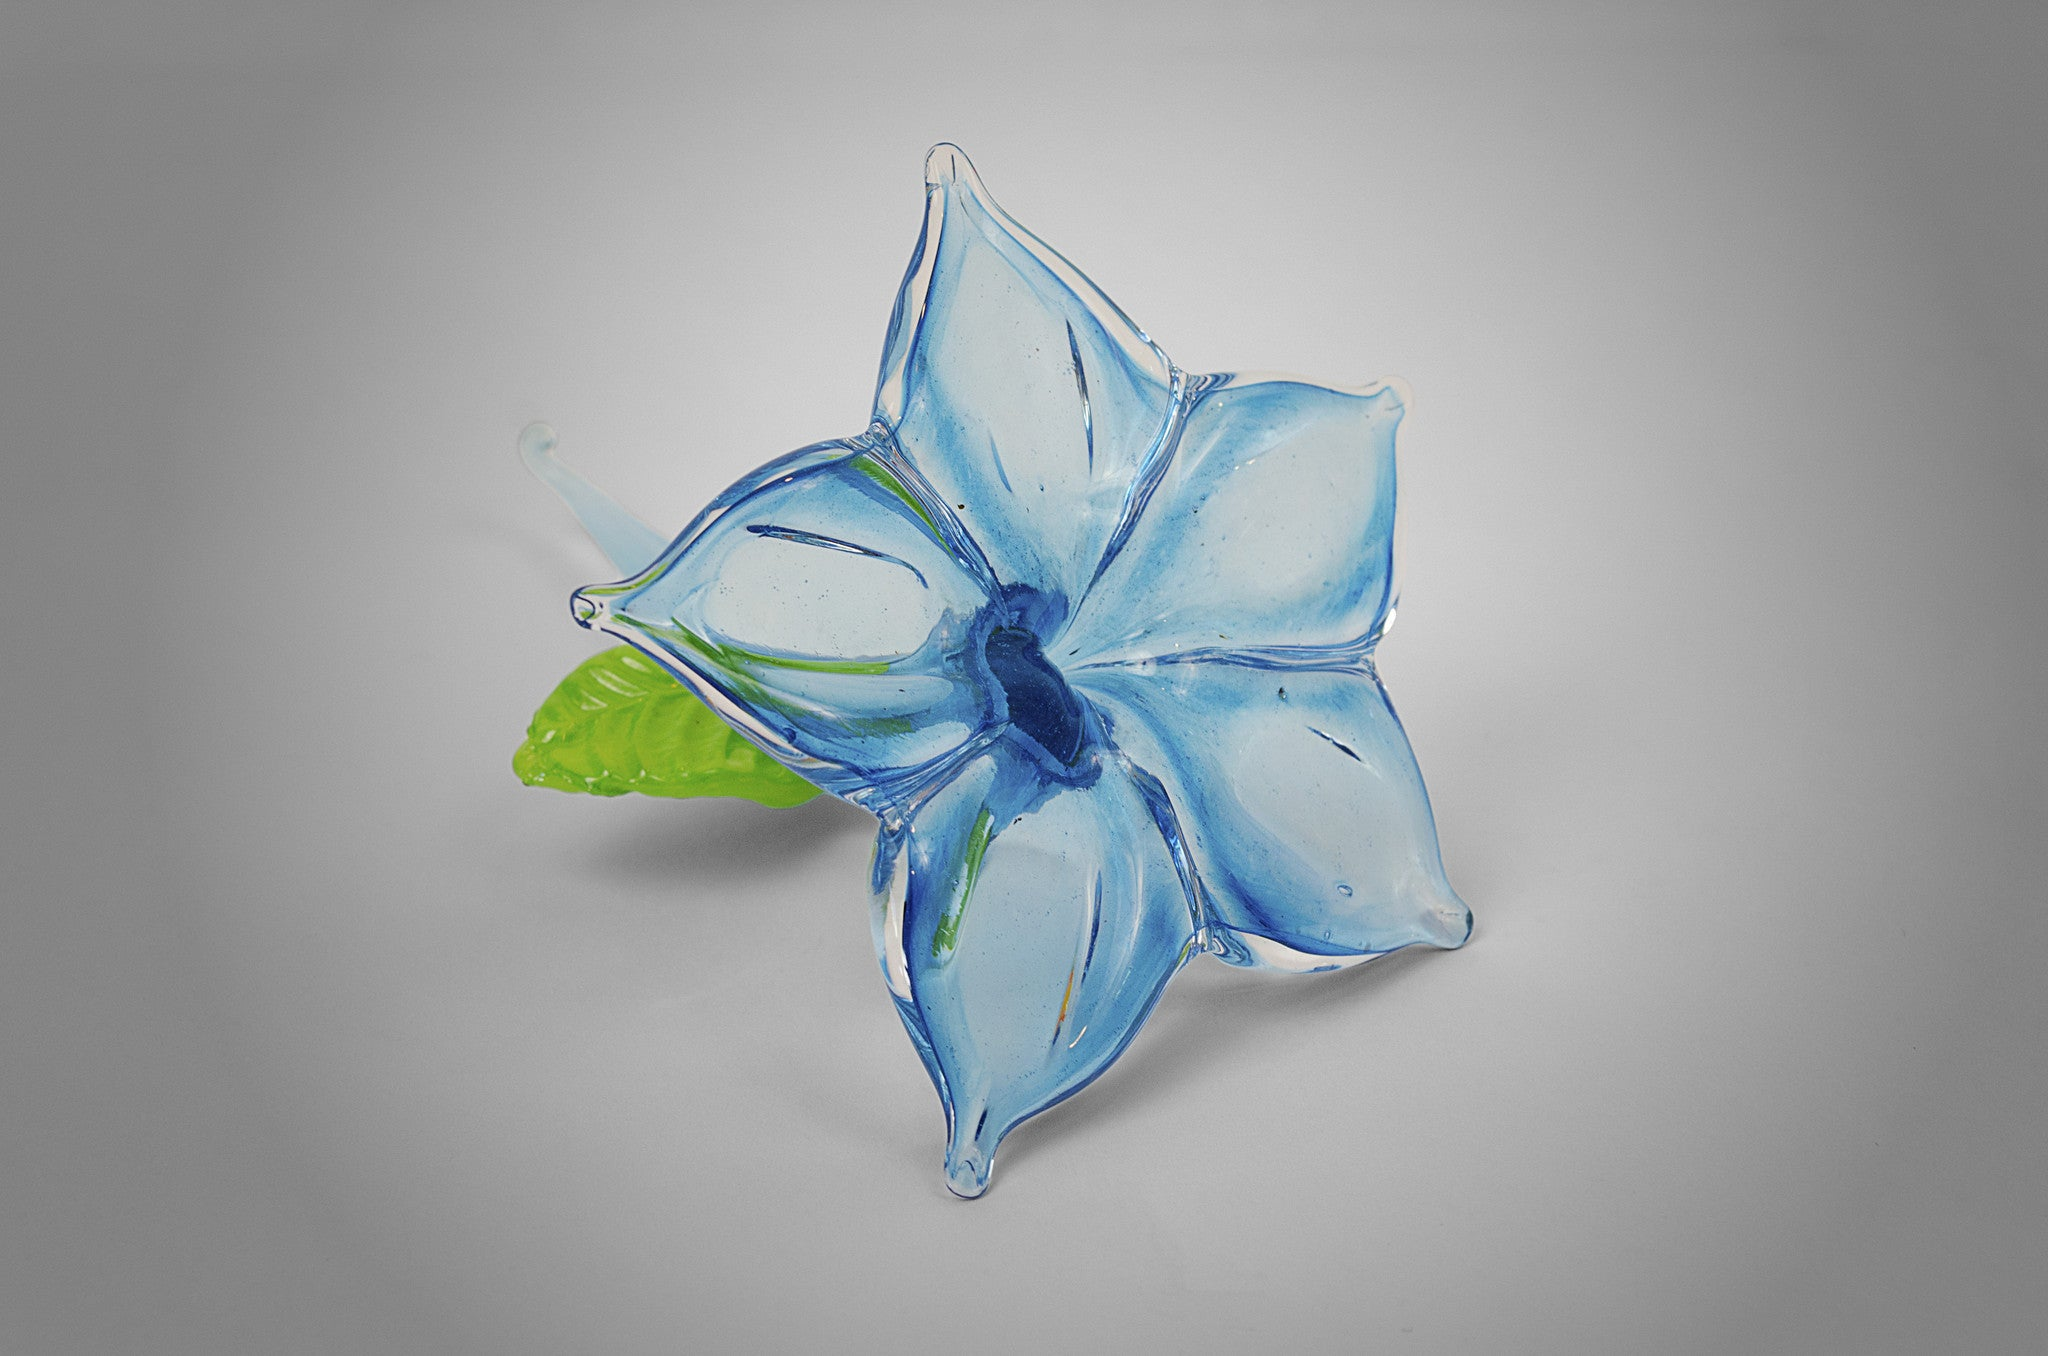 Small unique handmade glass accent flower in light blue color